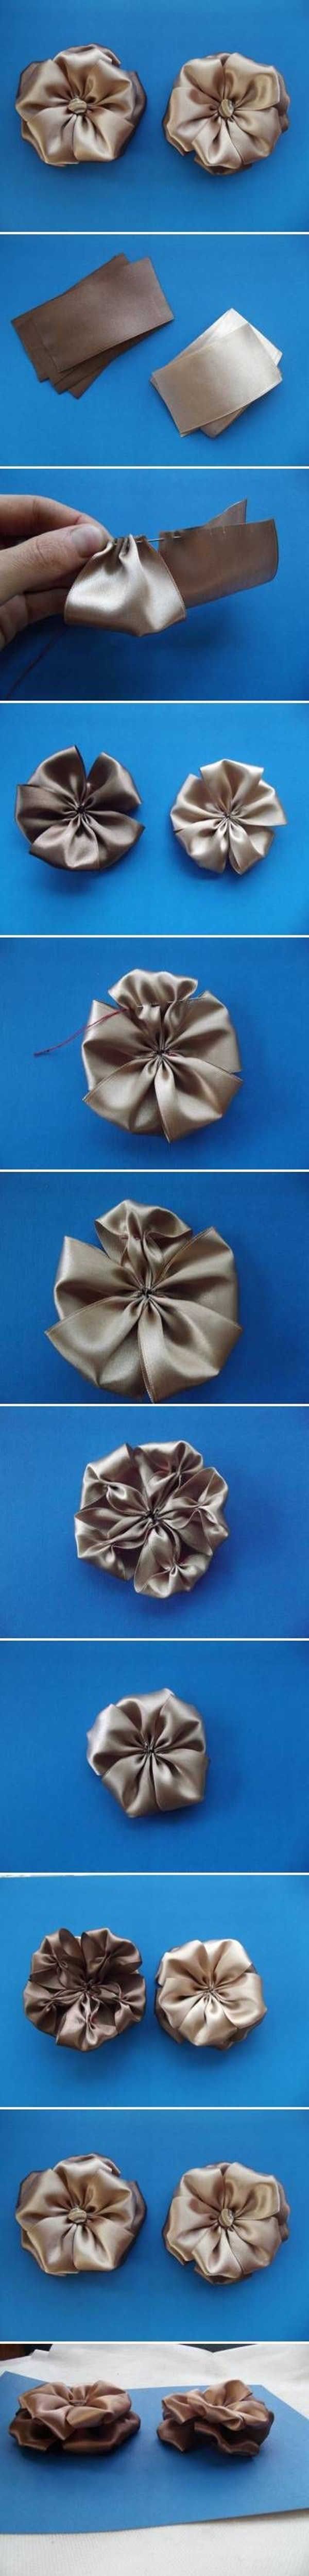 Different Ways to Use Ribbons 15